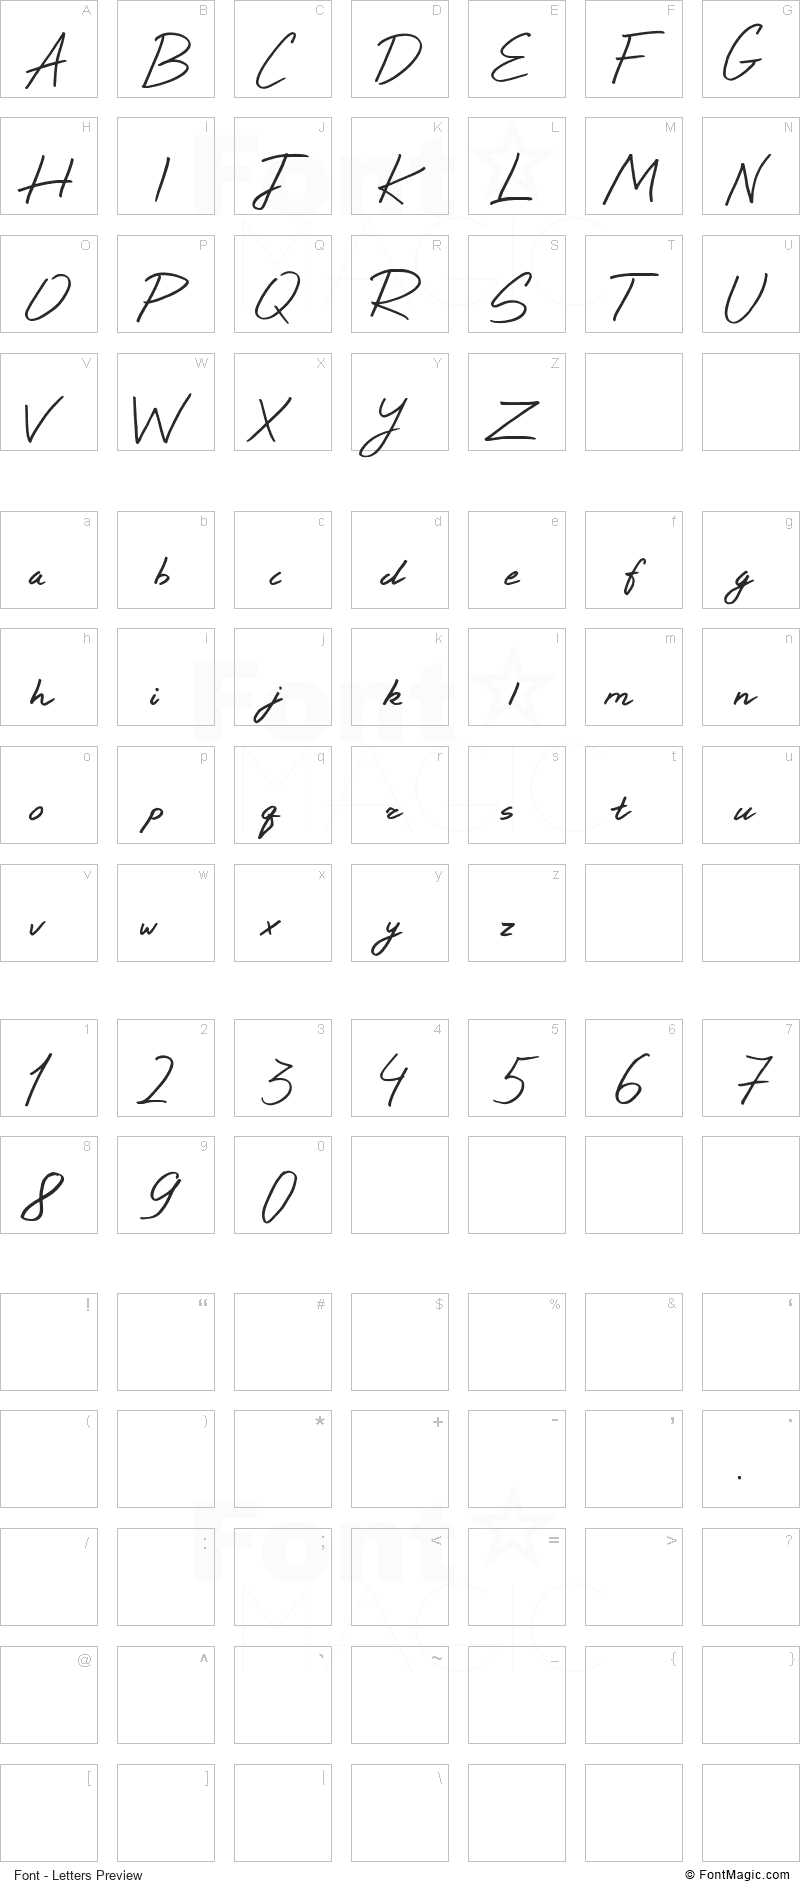 Epic Ride Font - All Latters Preview Chart